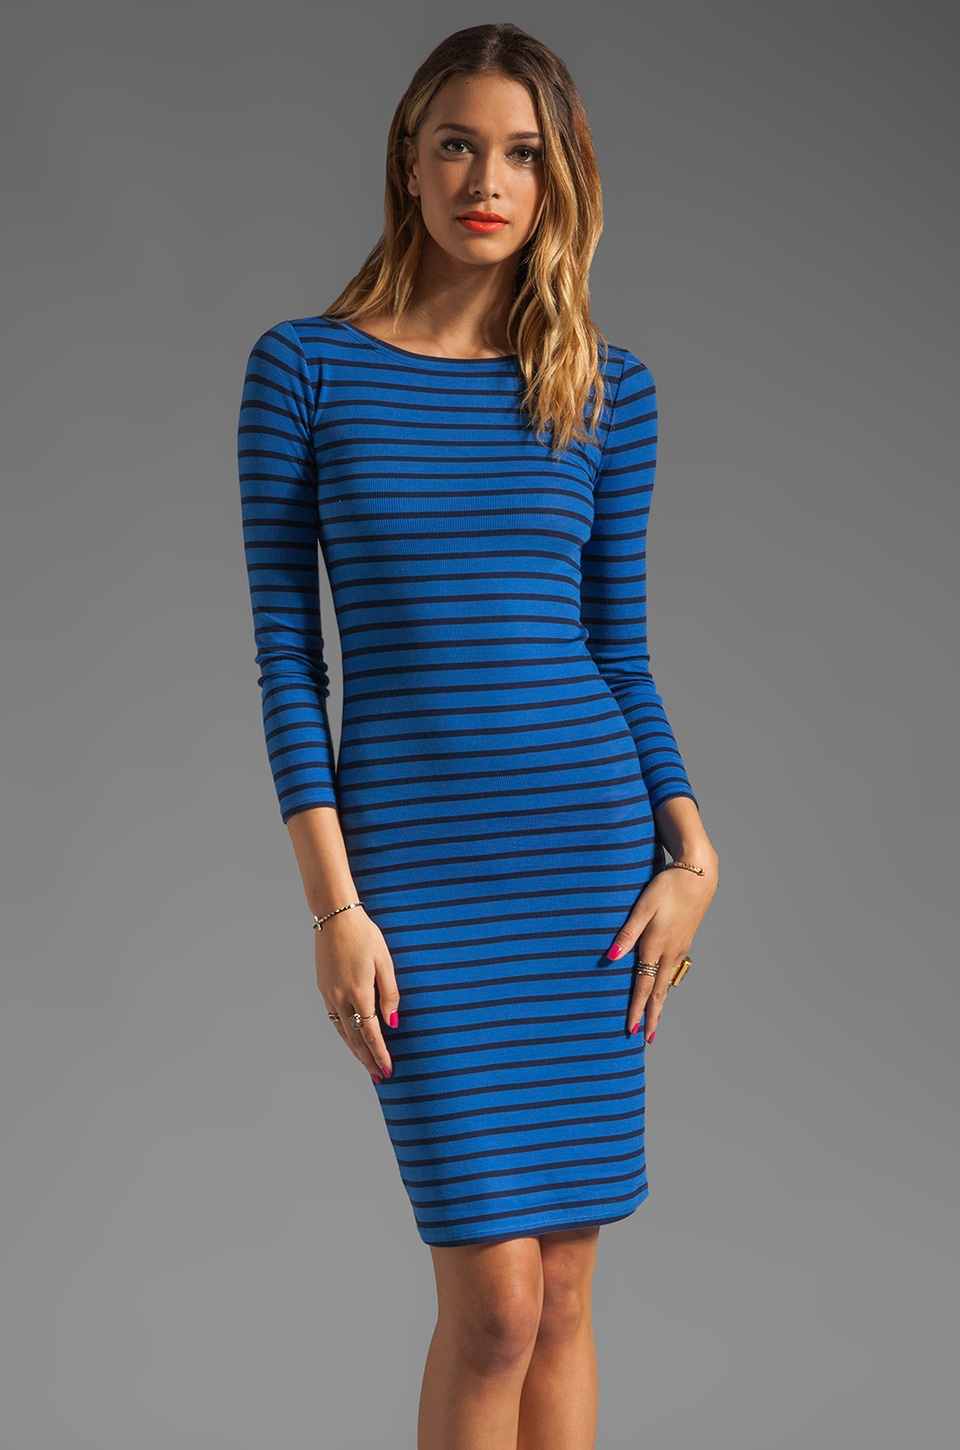 BCBGMAXAZRIA Striped Boatneck Dress in Larkspur and Classic Blue Combo